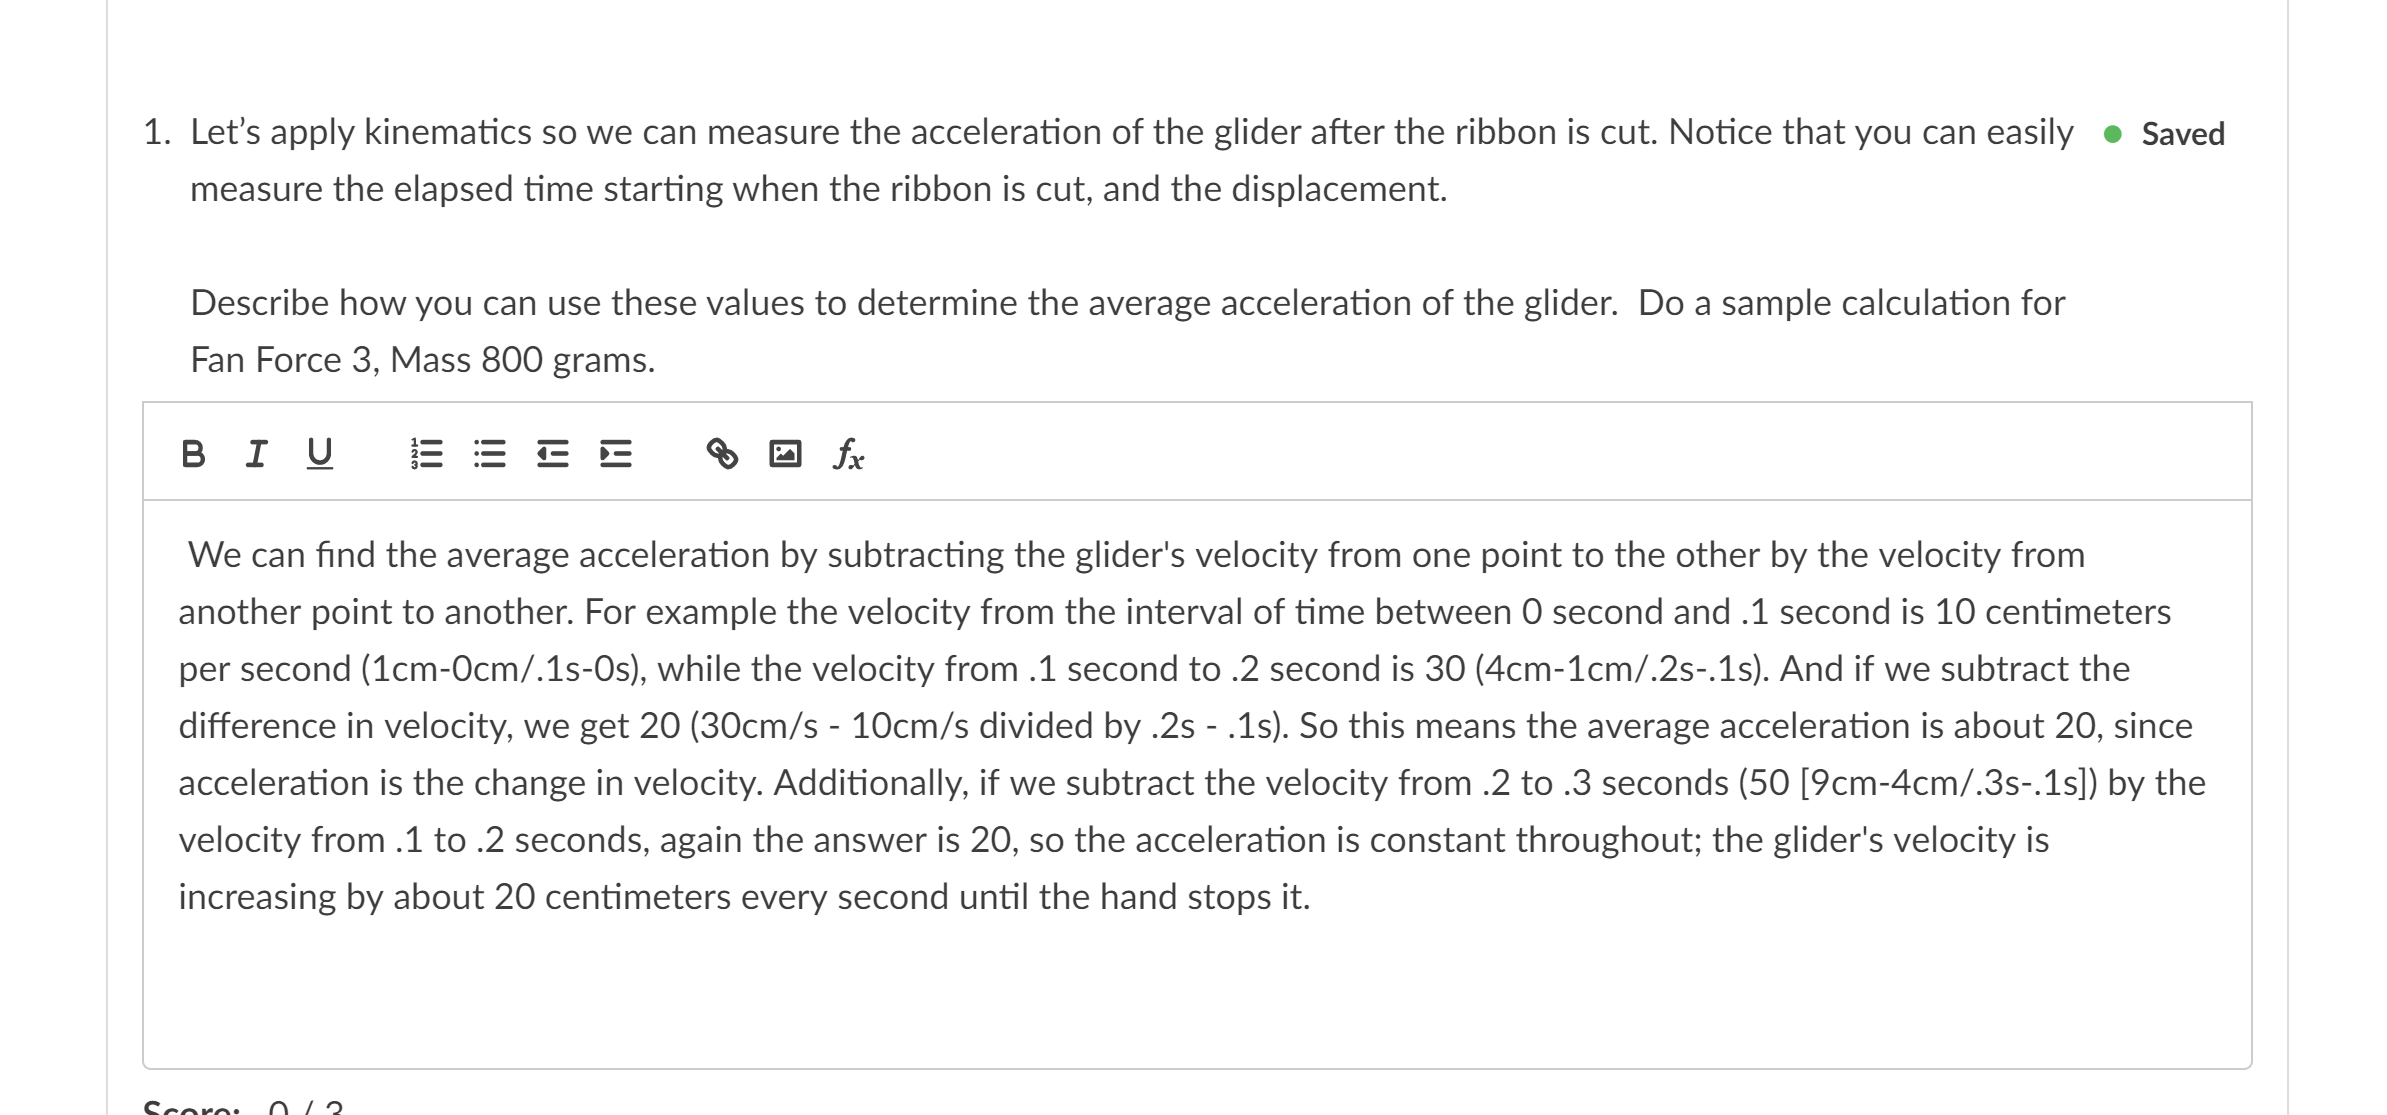 Is my answer correct? I'm very confused because a = 2x/t^2 ...